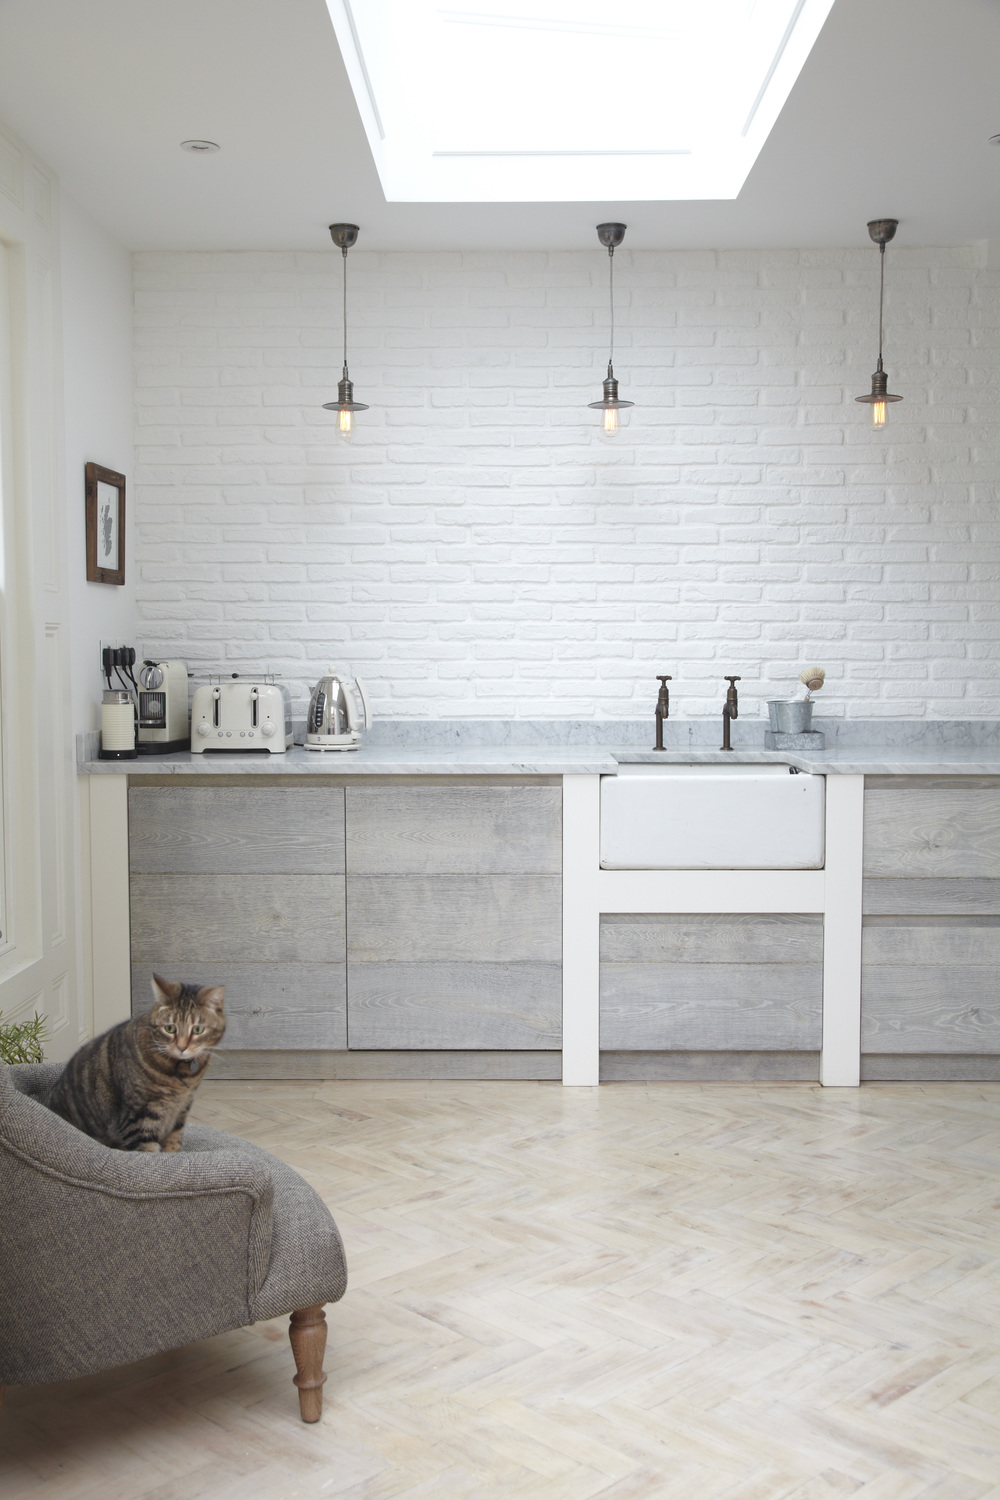 Herringbone Wood Floor white brick Scandinavian Kitchen